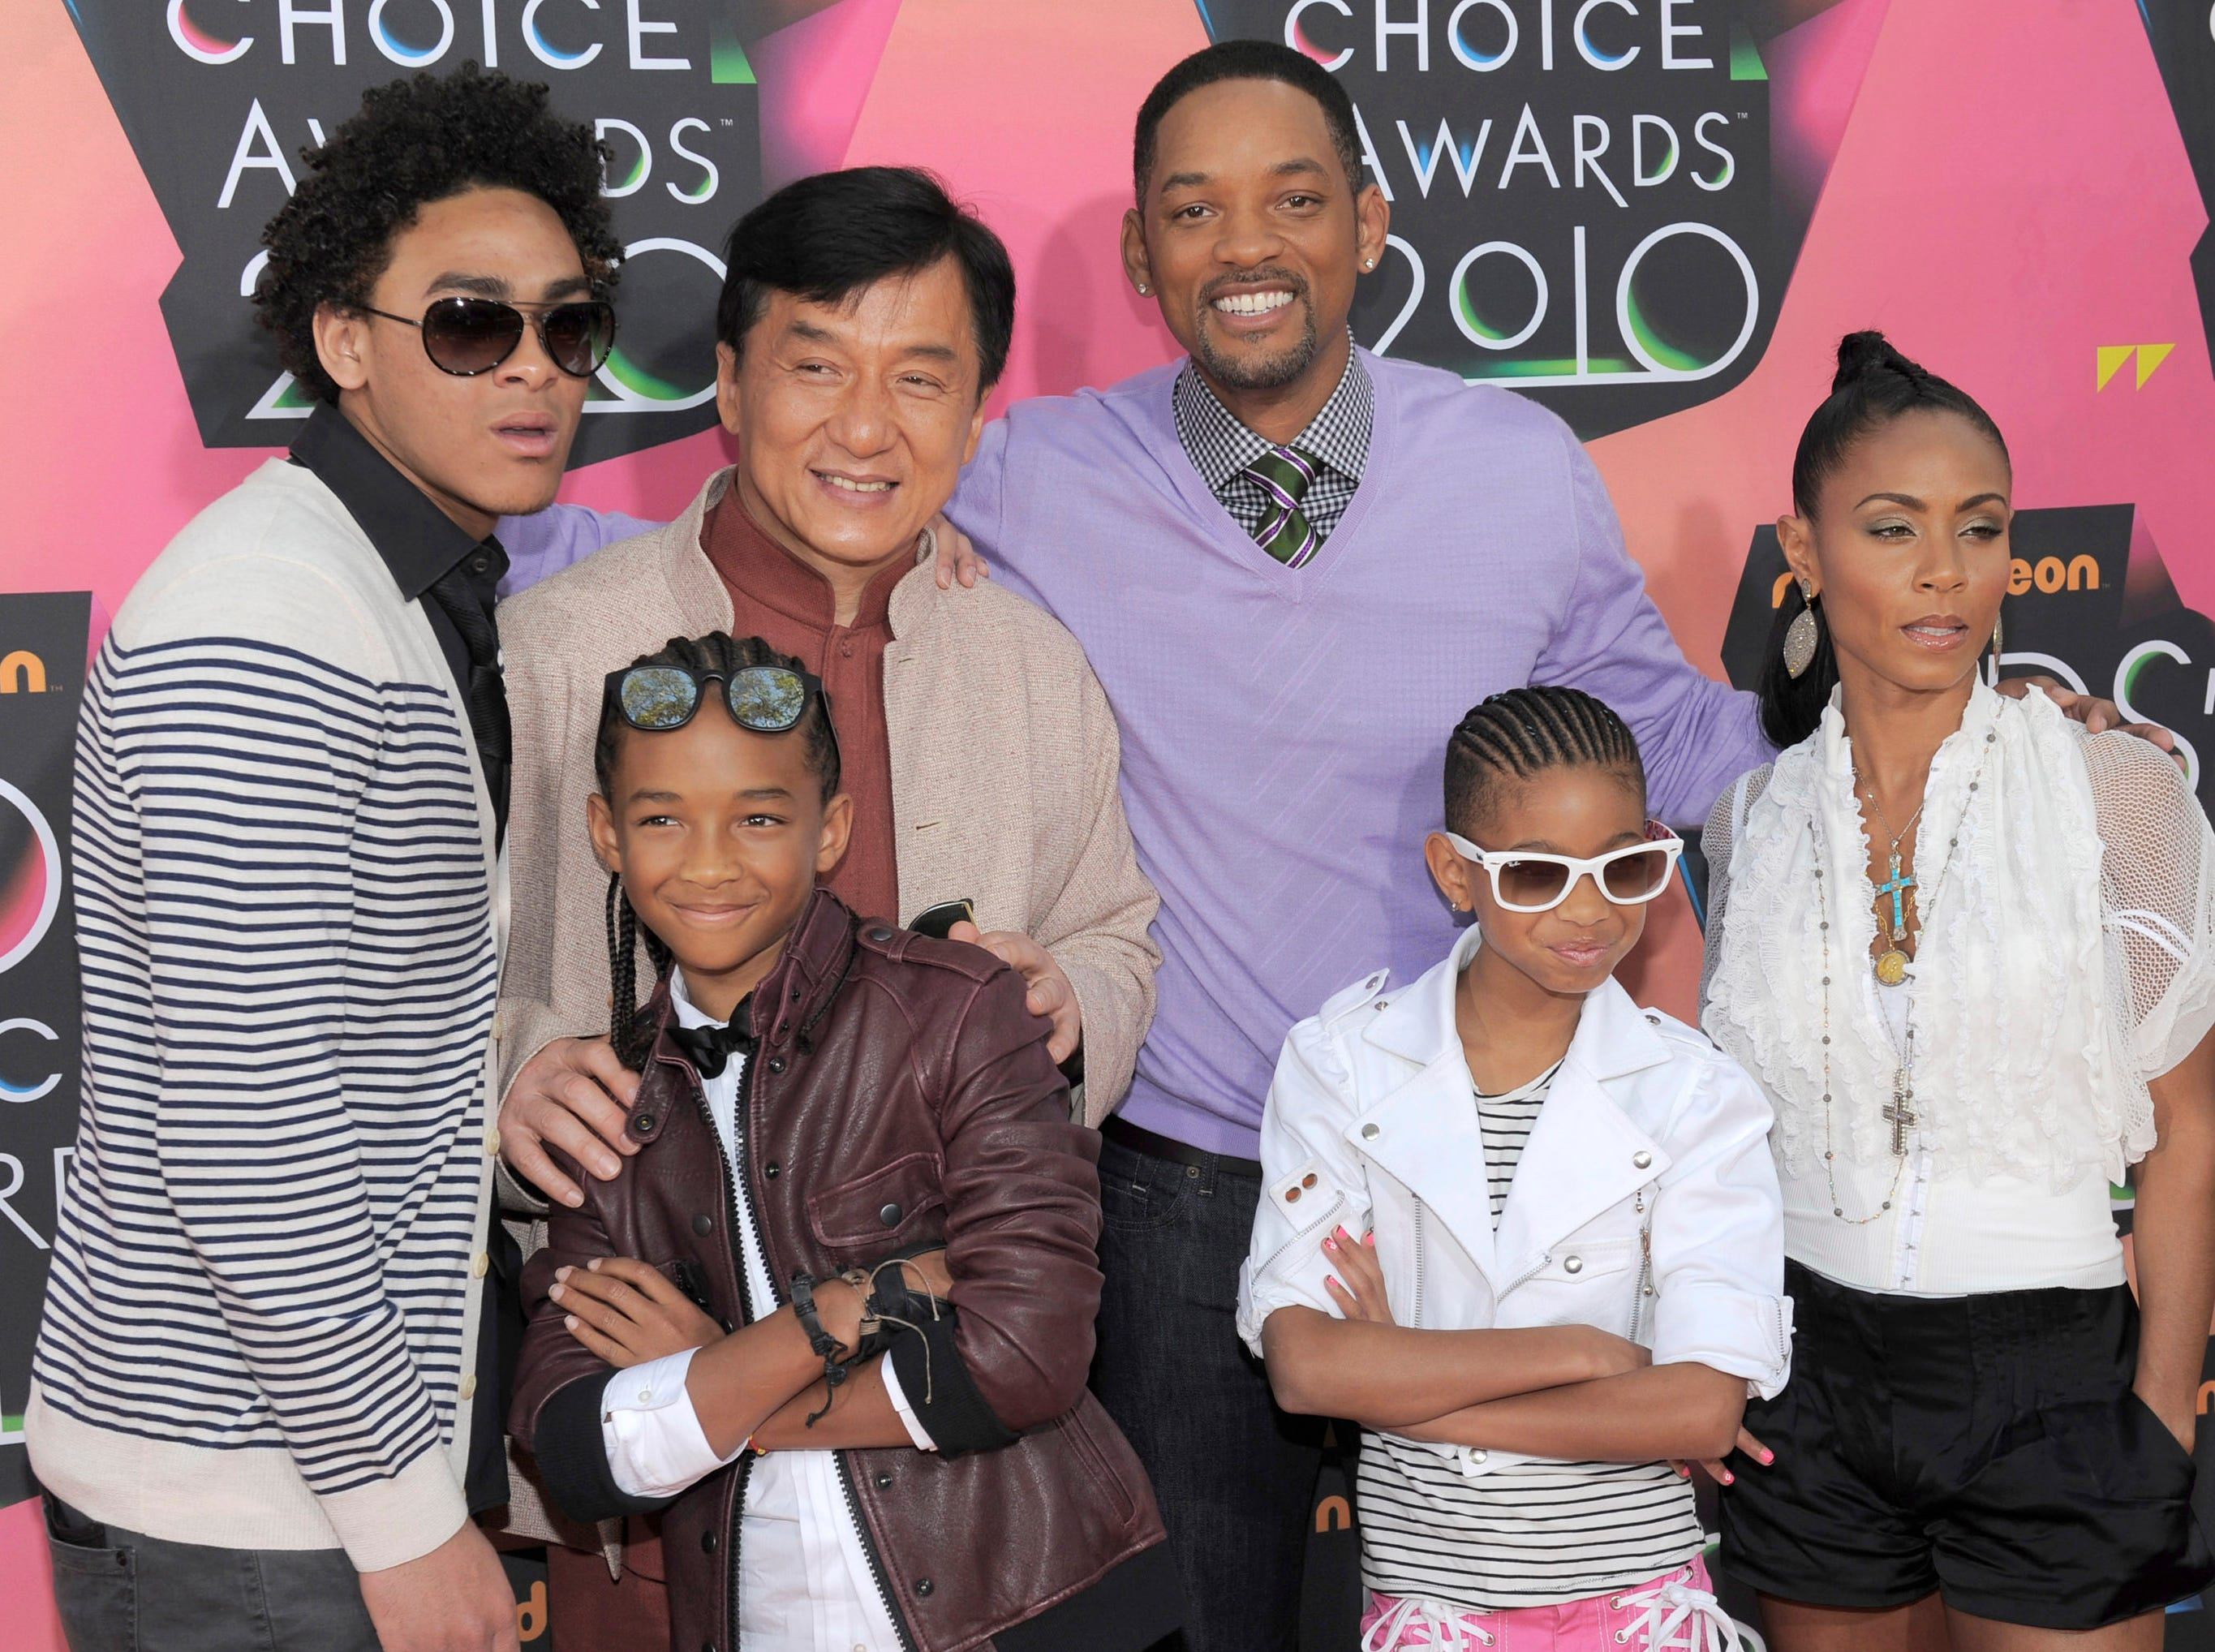 Trey Smith, actor Jackie Chan, actor Will Smith, Jada Pinkett Smith, in foreground, Jaden Smith and Willow Smith